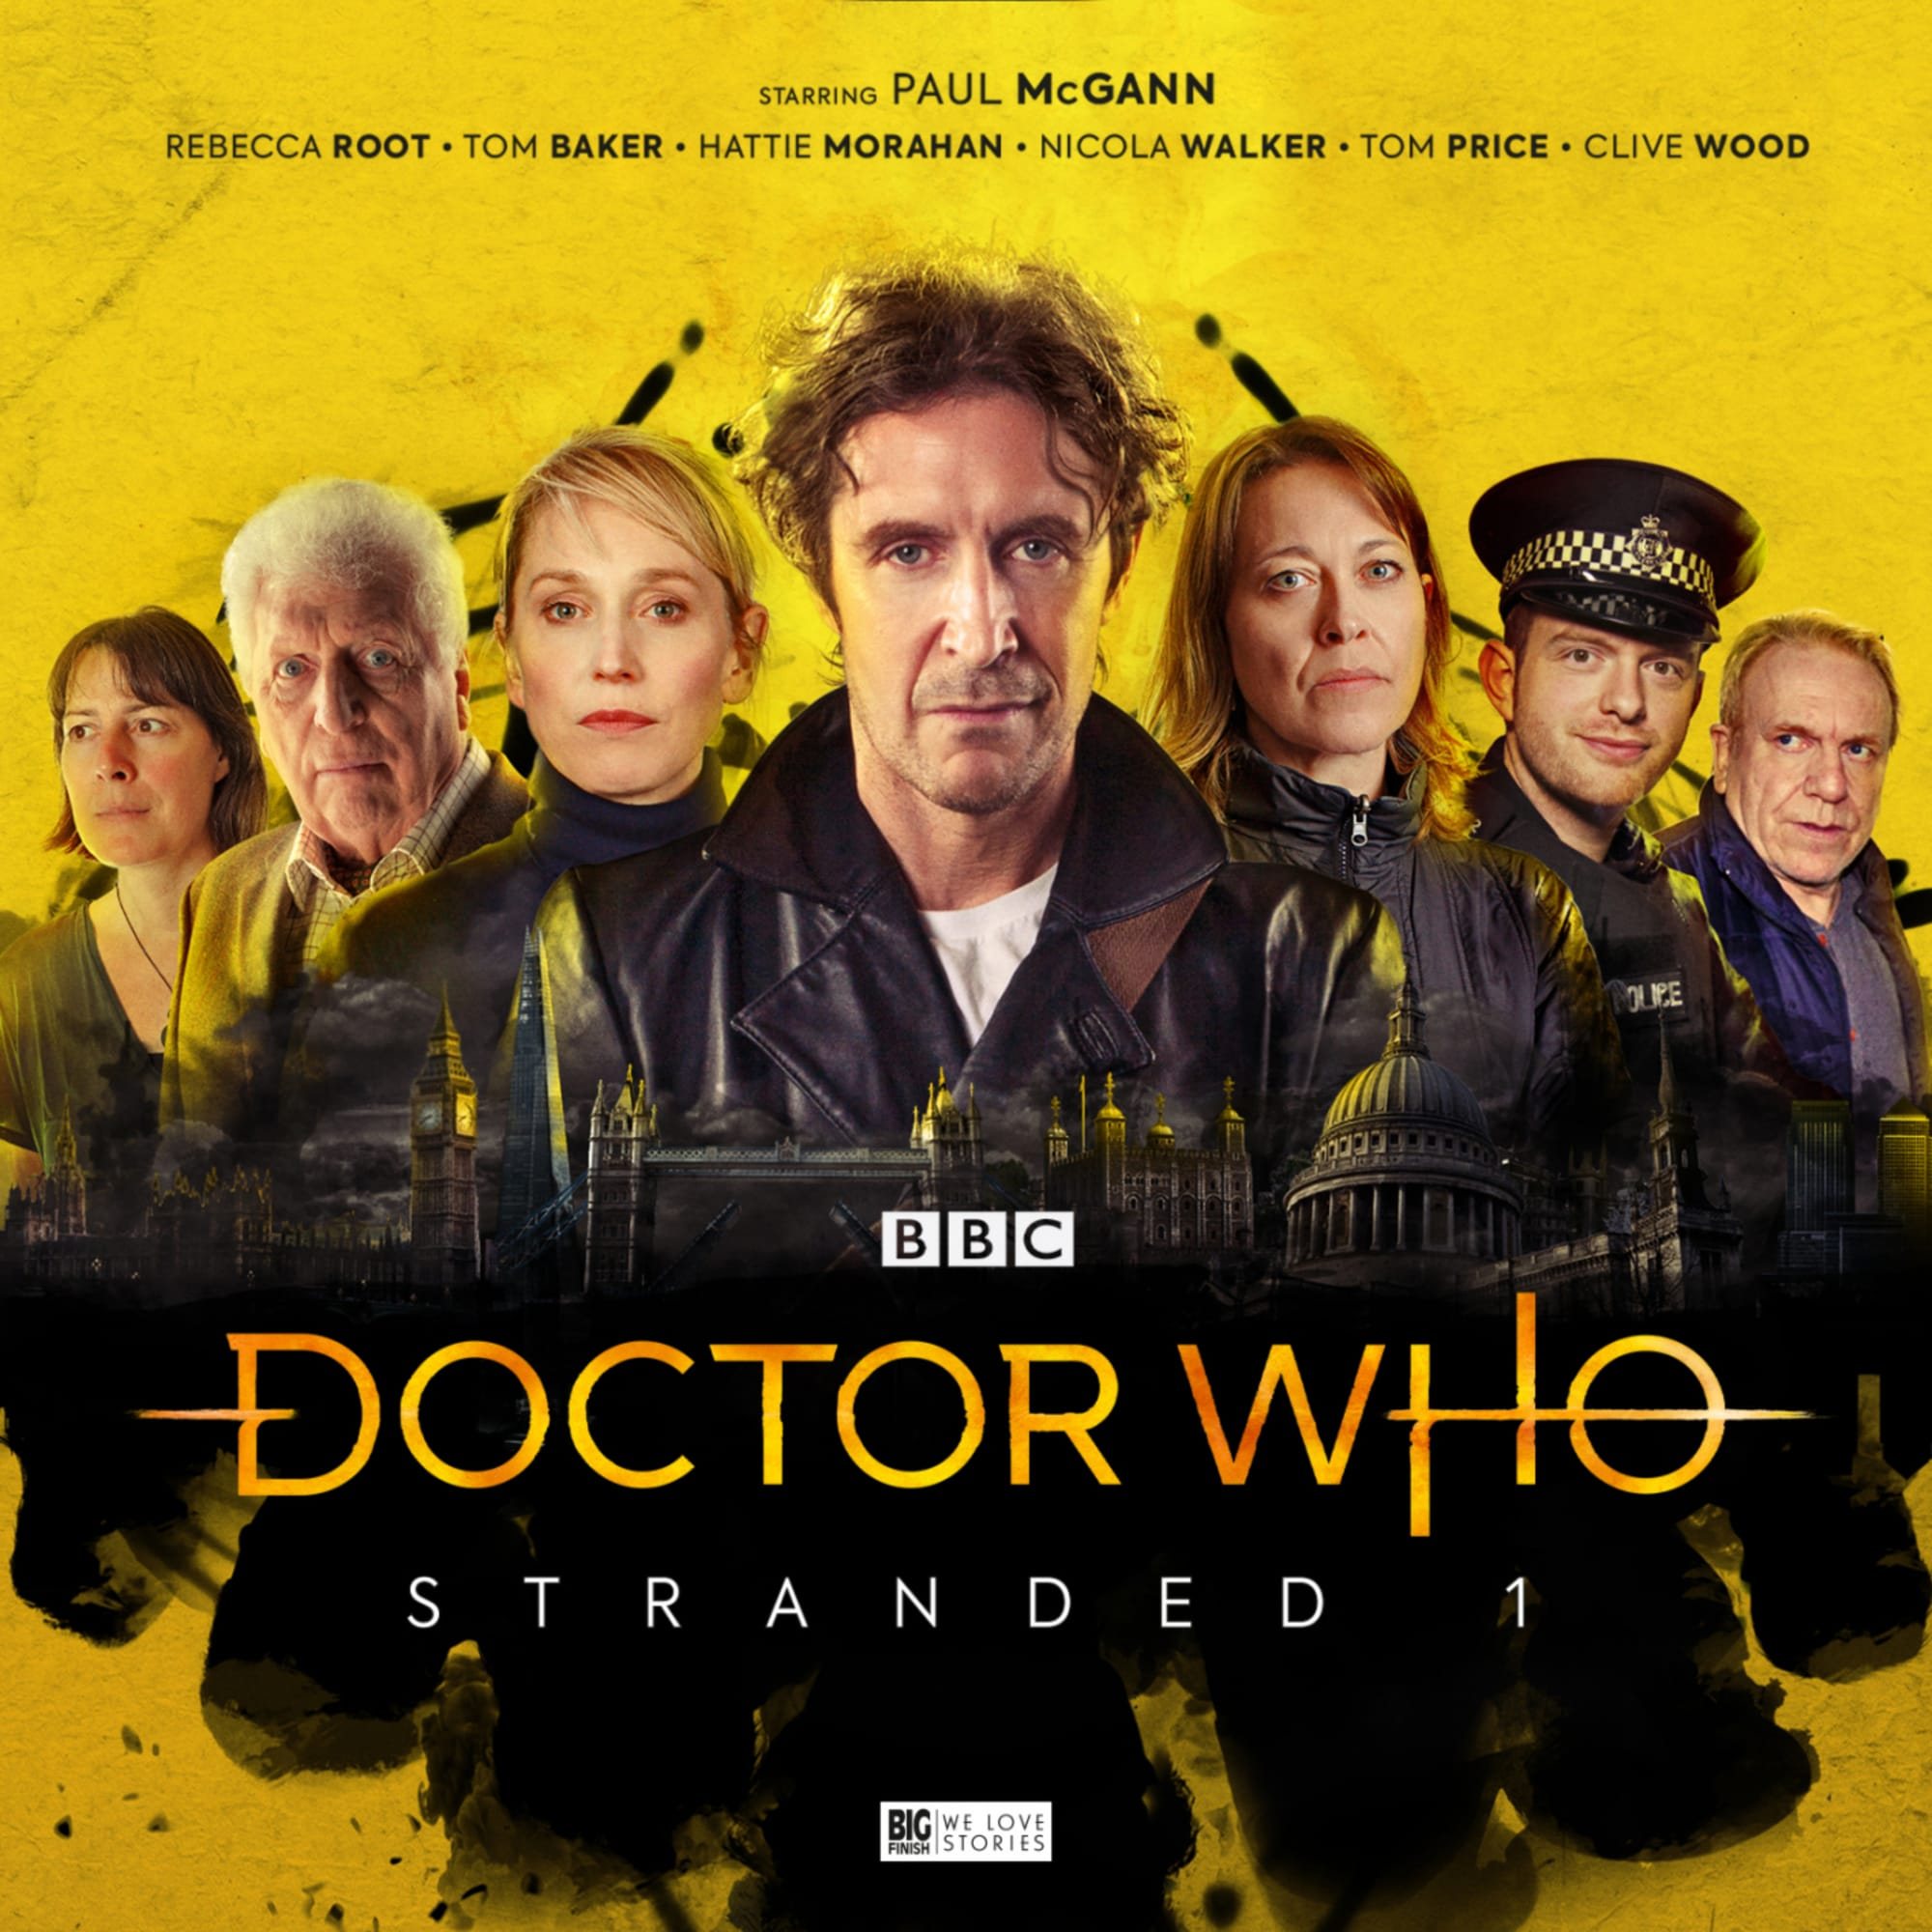 Doctor Who review: Stranded 1 begins a completely fresh era for the Eighth Doctor